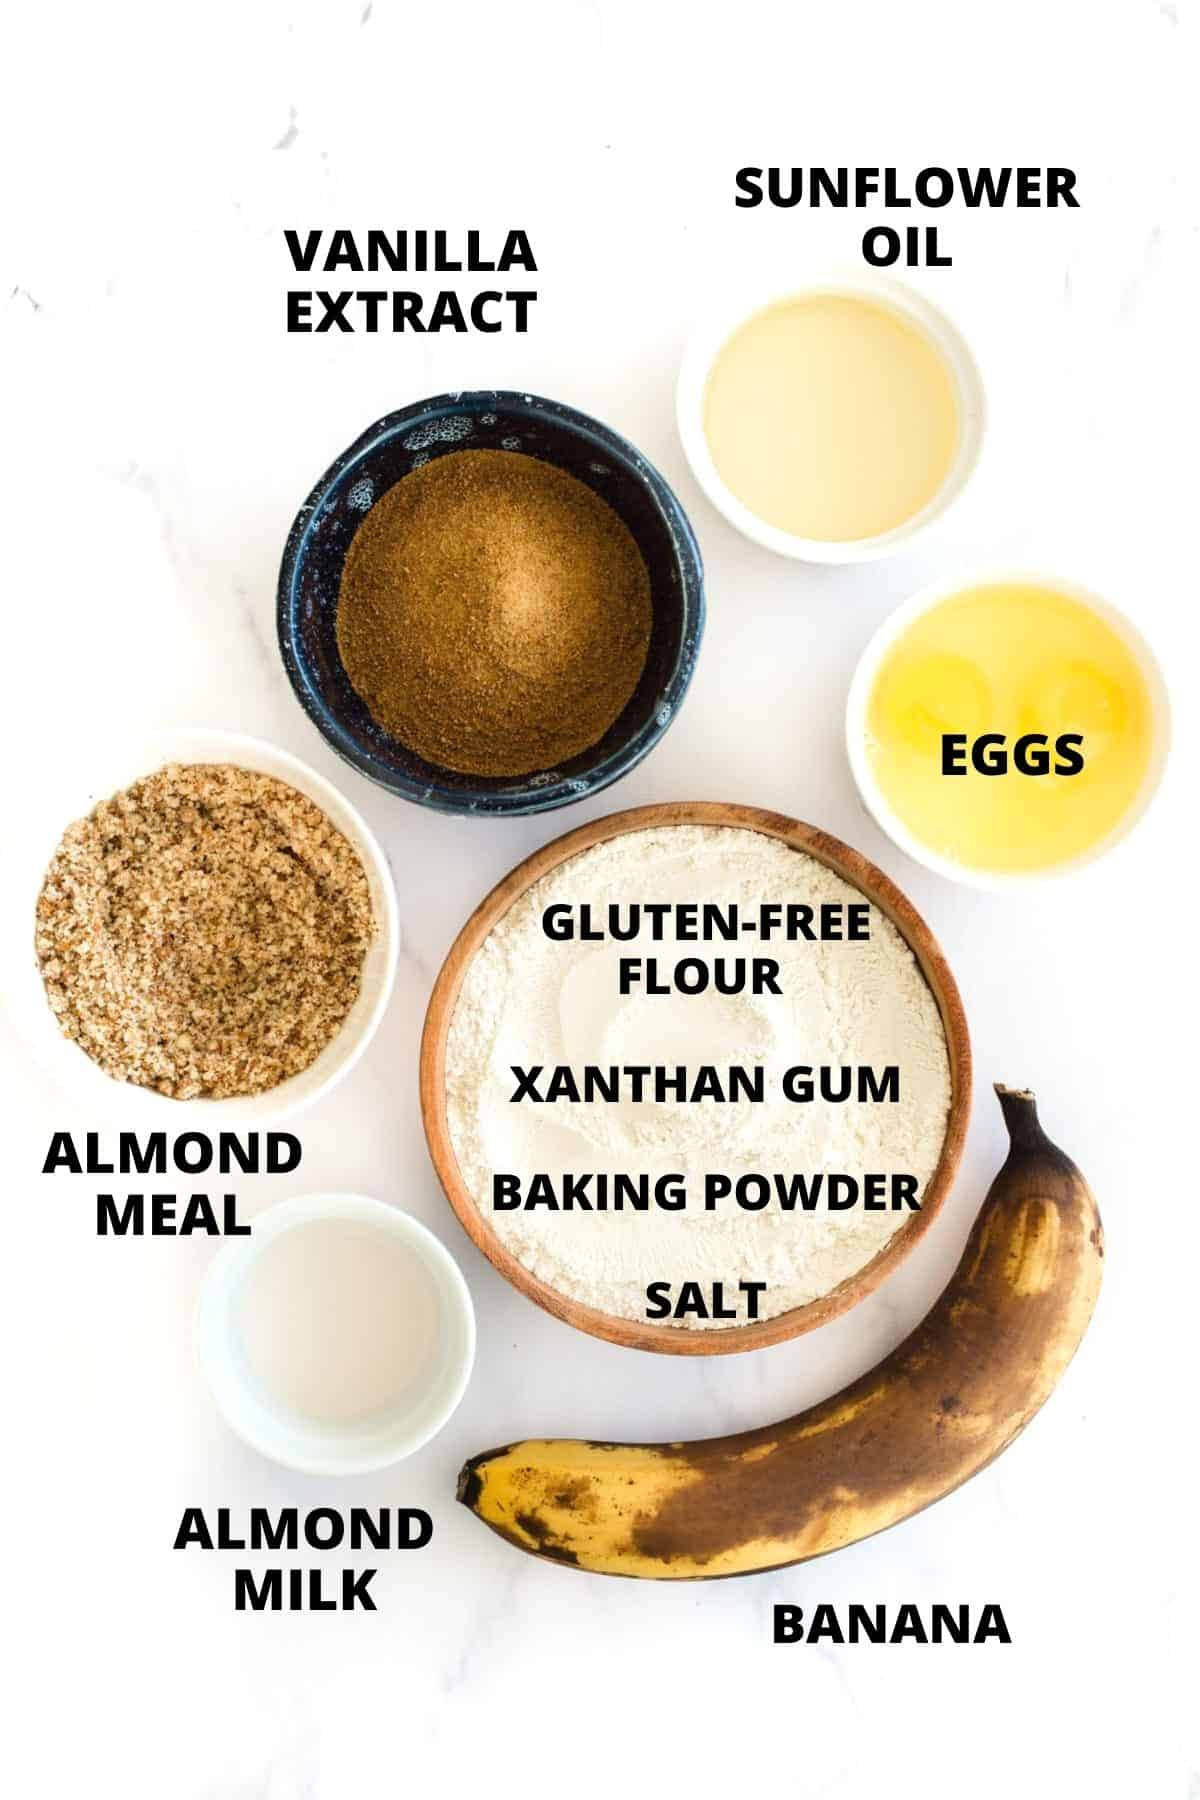 Ingredients for a gluten-free banana bread recipe.